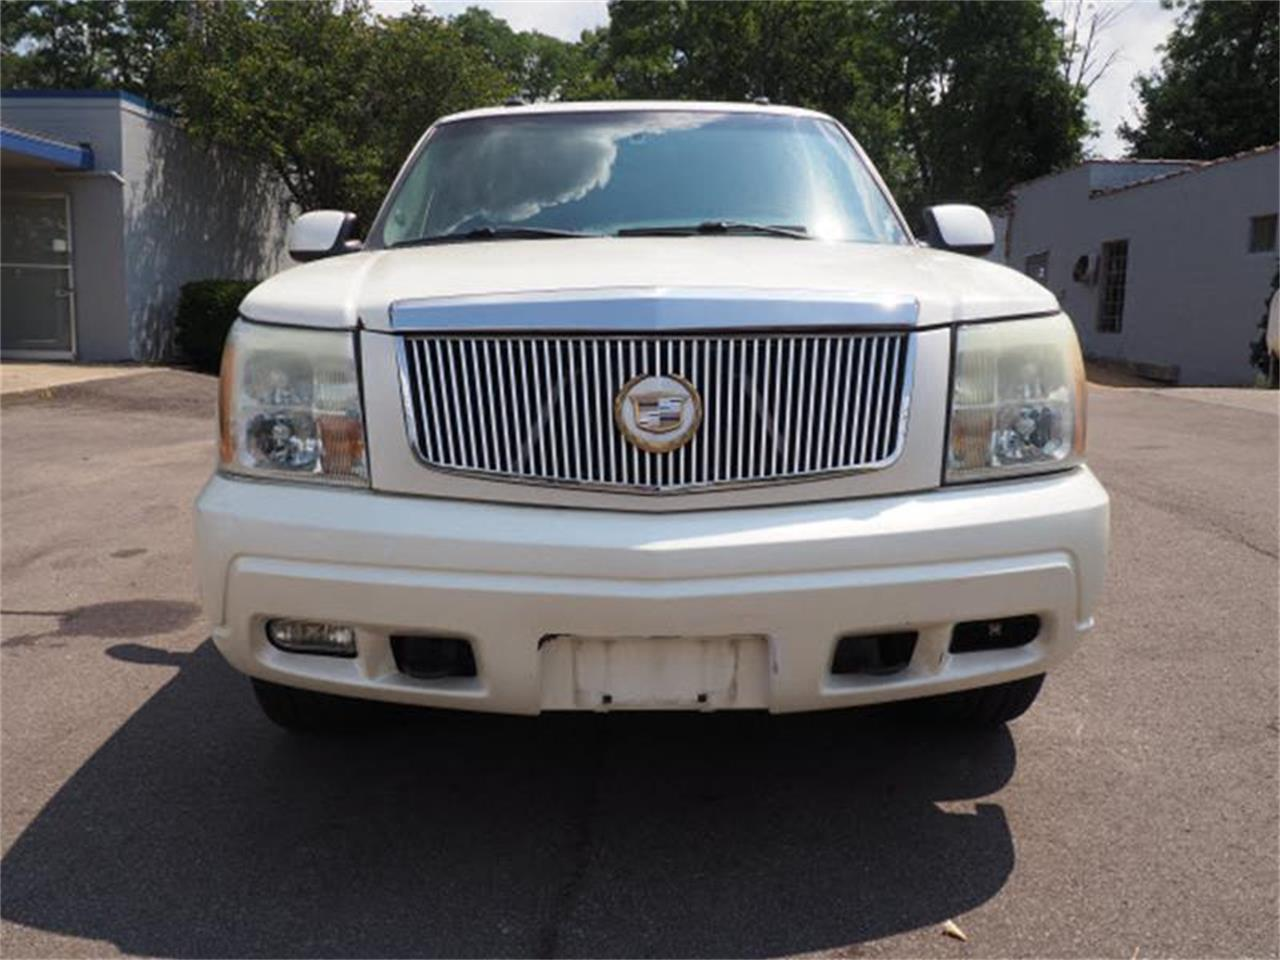 Large Picture of 2003 Cadillac Escalade located in Ohio Offered by Cincinnati Auto Wholesale - MBL6